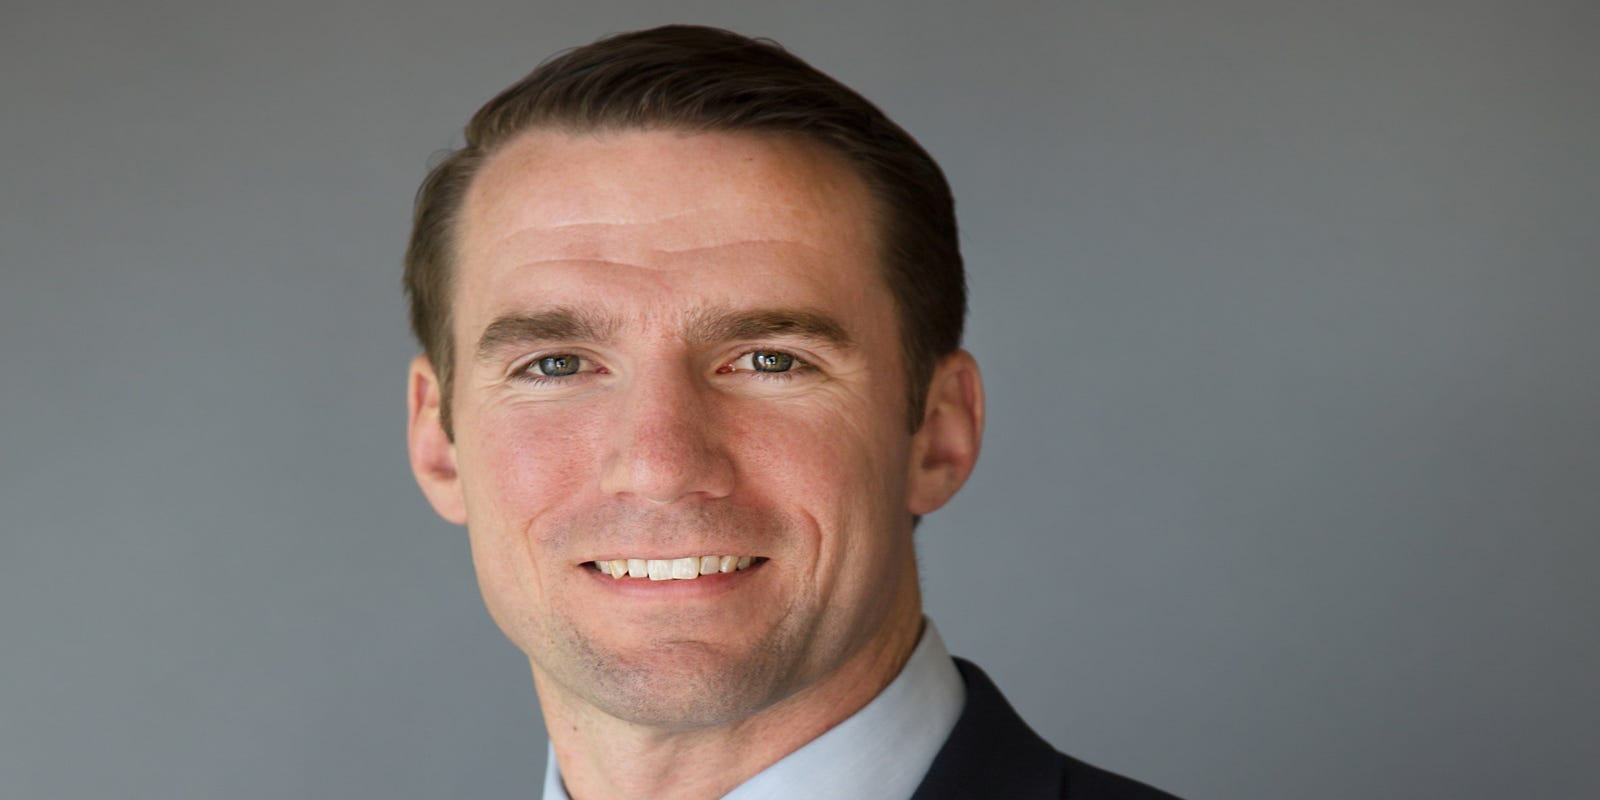 State Rep. Bobby Cox of Greer chosen to lead newly created SC Veterans' Affairs department